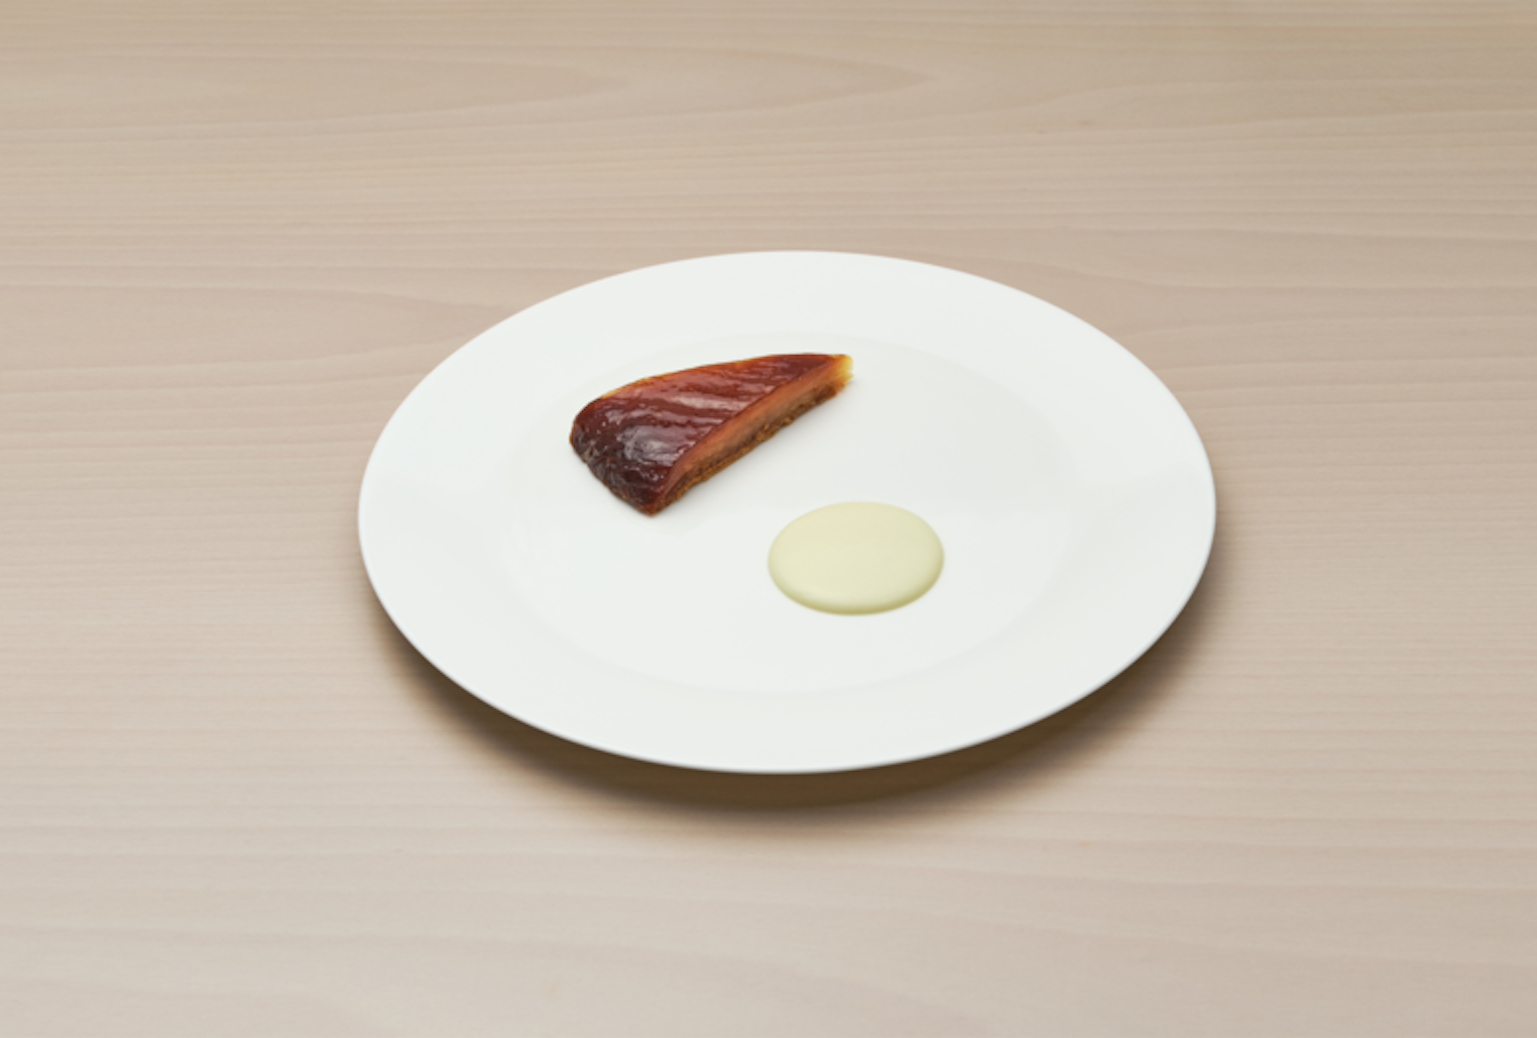 A daikon tarte tatin with a chive cream on a white plate, on a light wood background